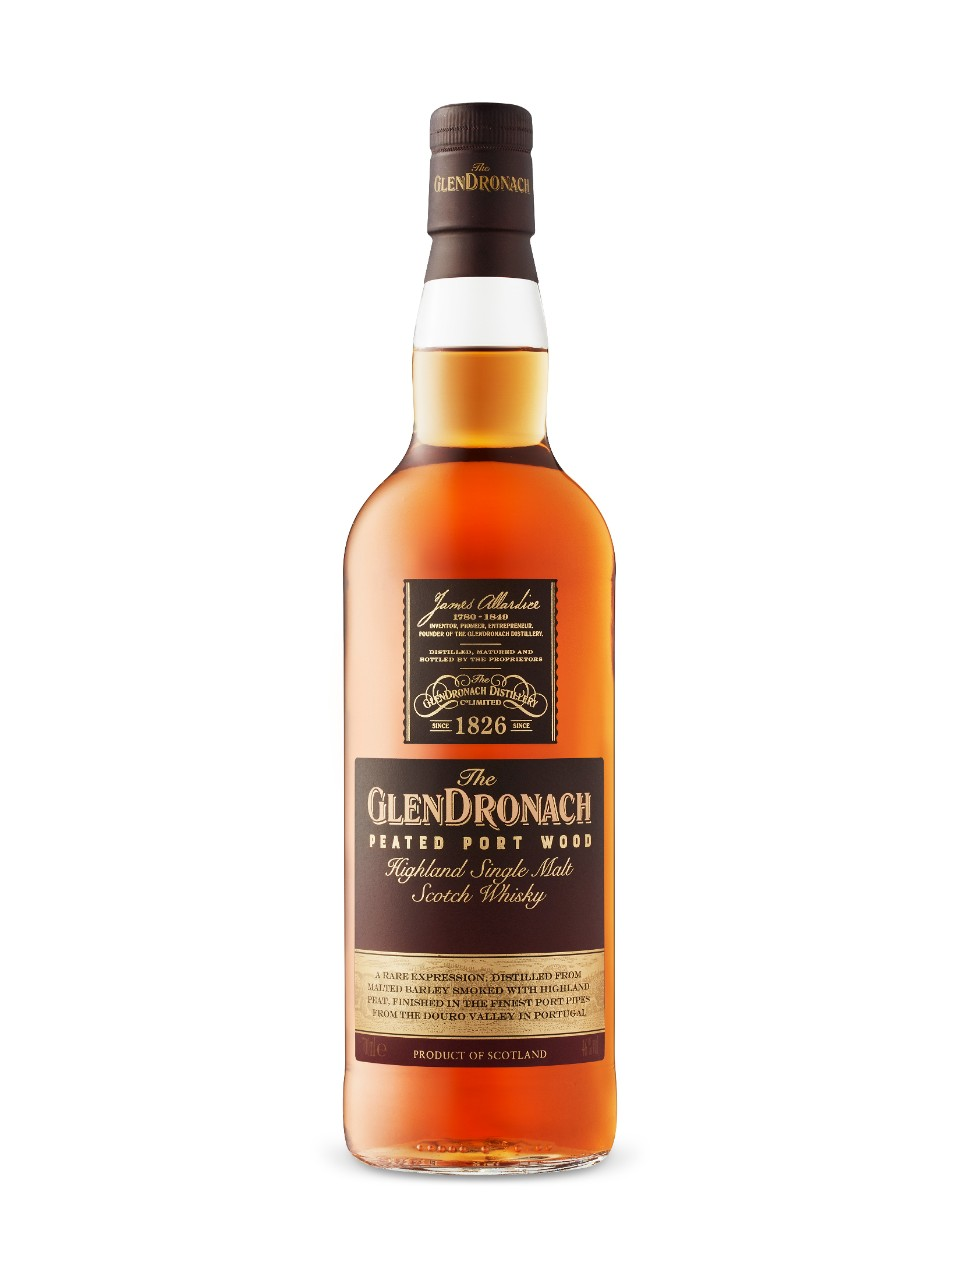 Glendronach Peated Port Wood Finish Single Malt